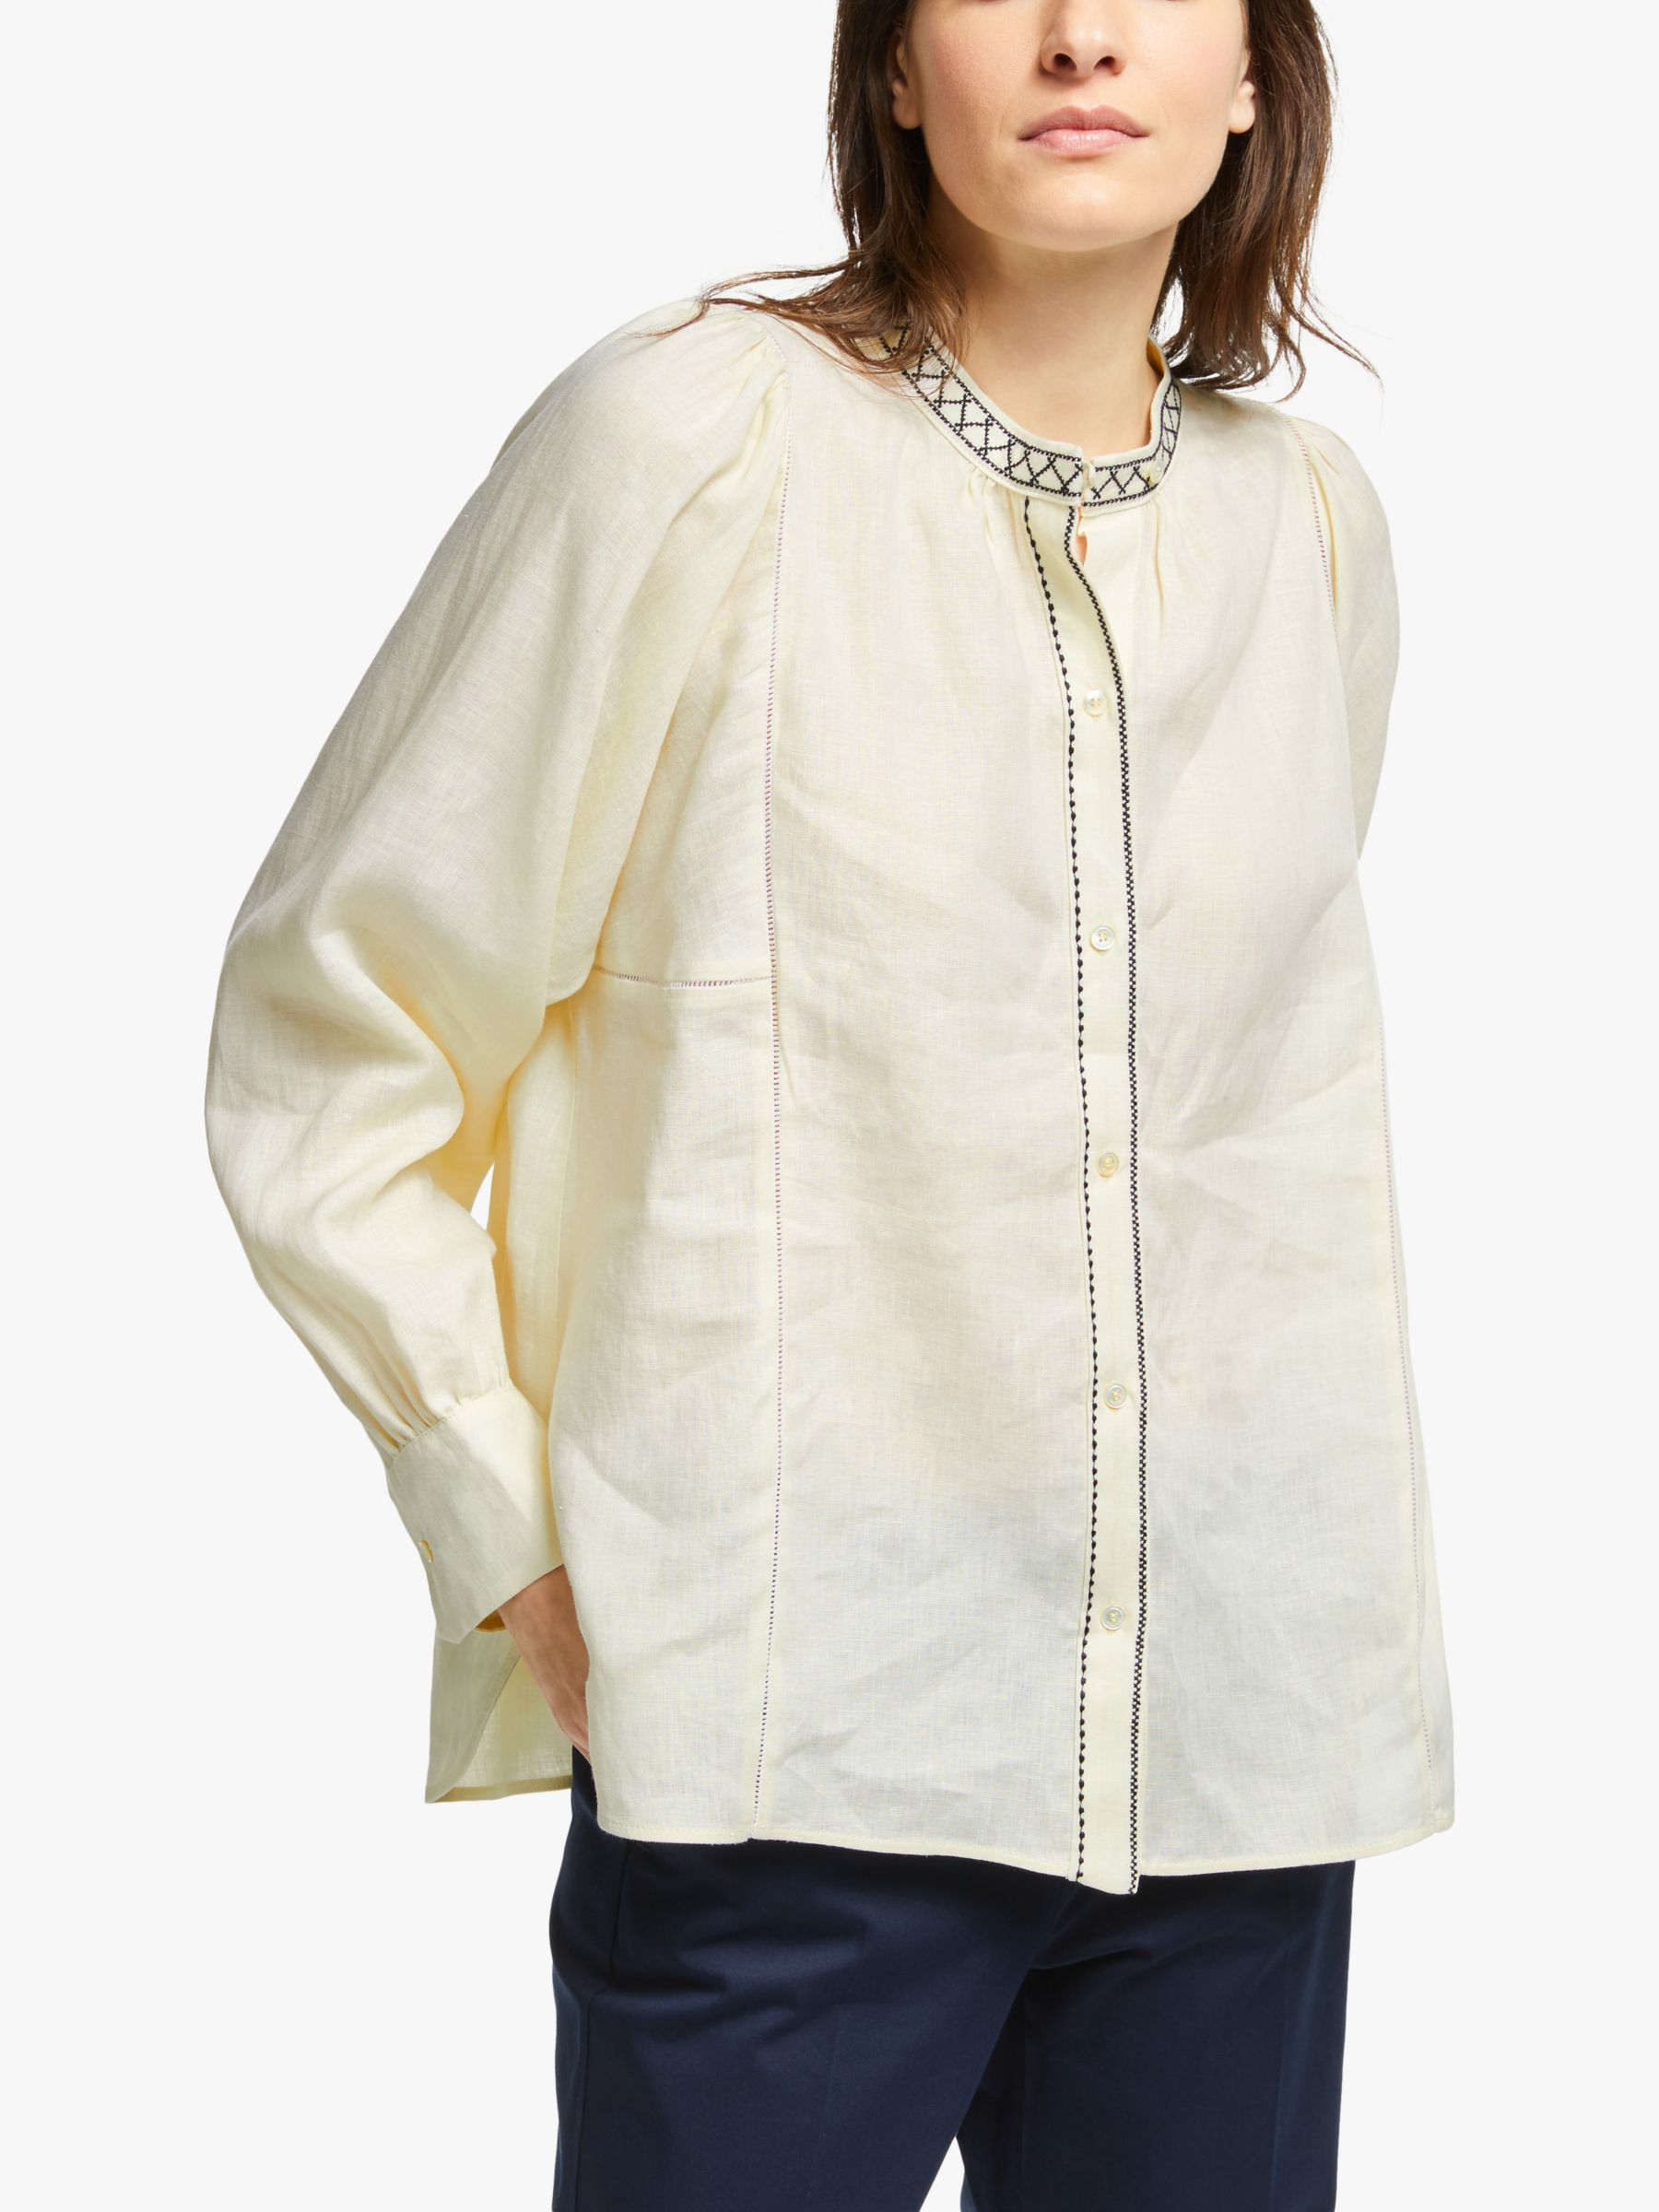 WEEKEND MaxMara Weekend MaxMara Terni Linen Shirt, Ivory